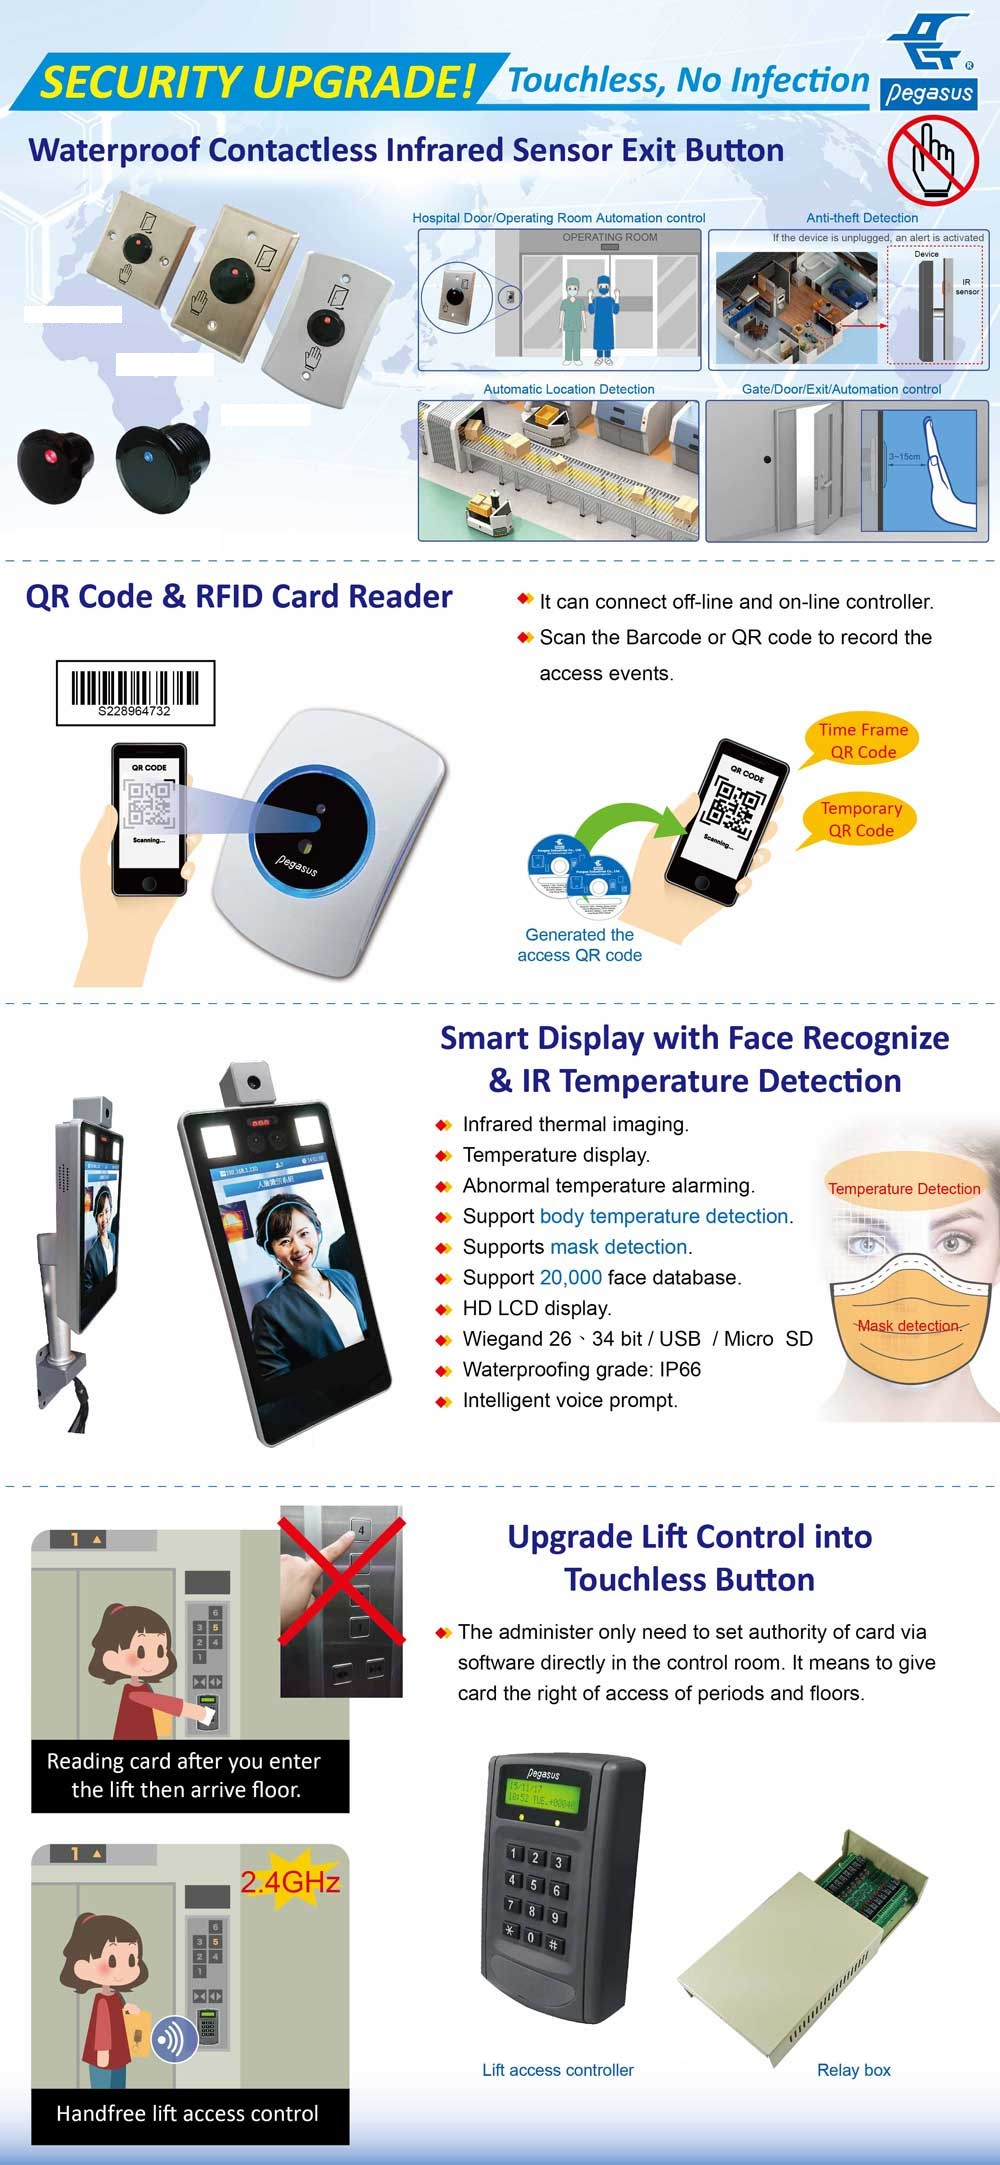 Security upgrade! Touchless, No Infection new solutions - Made in Taiwan